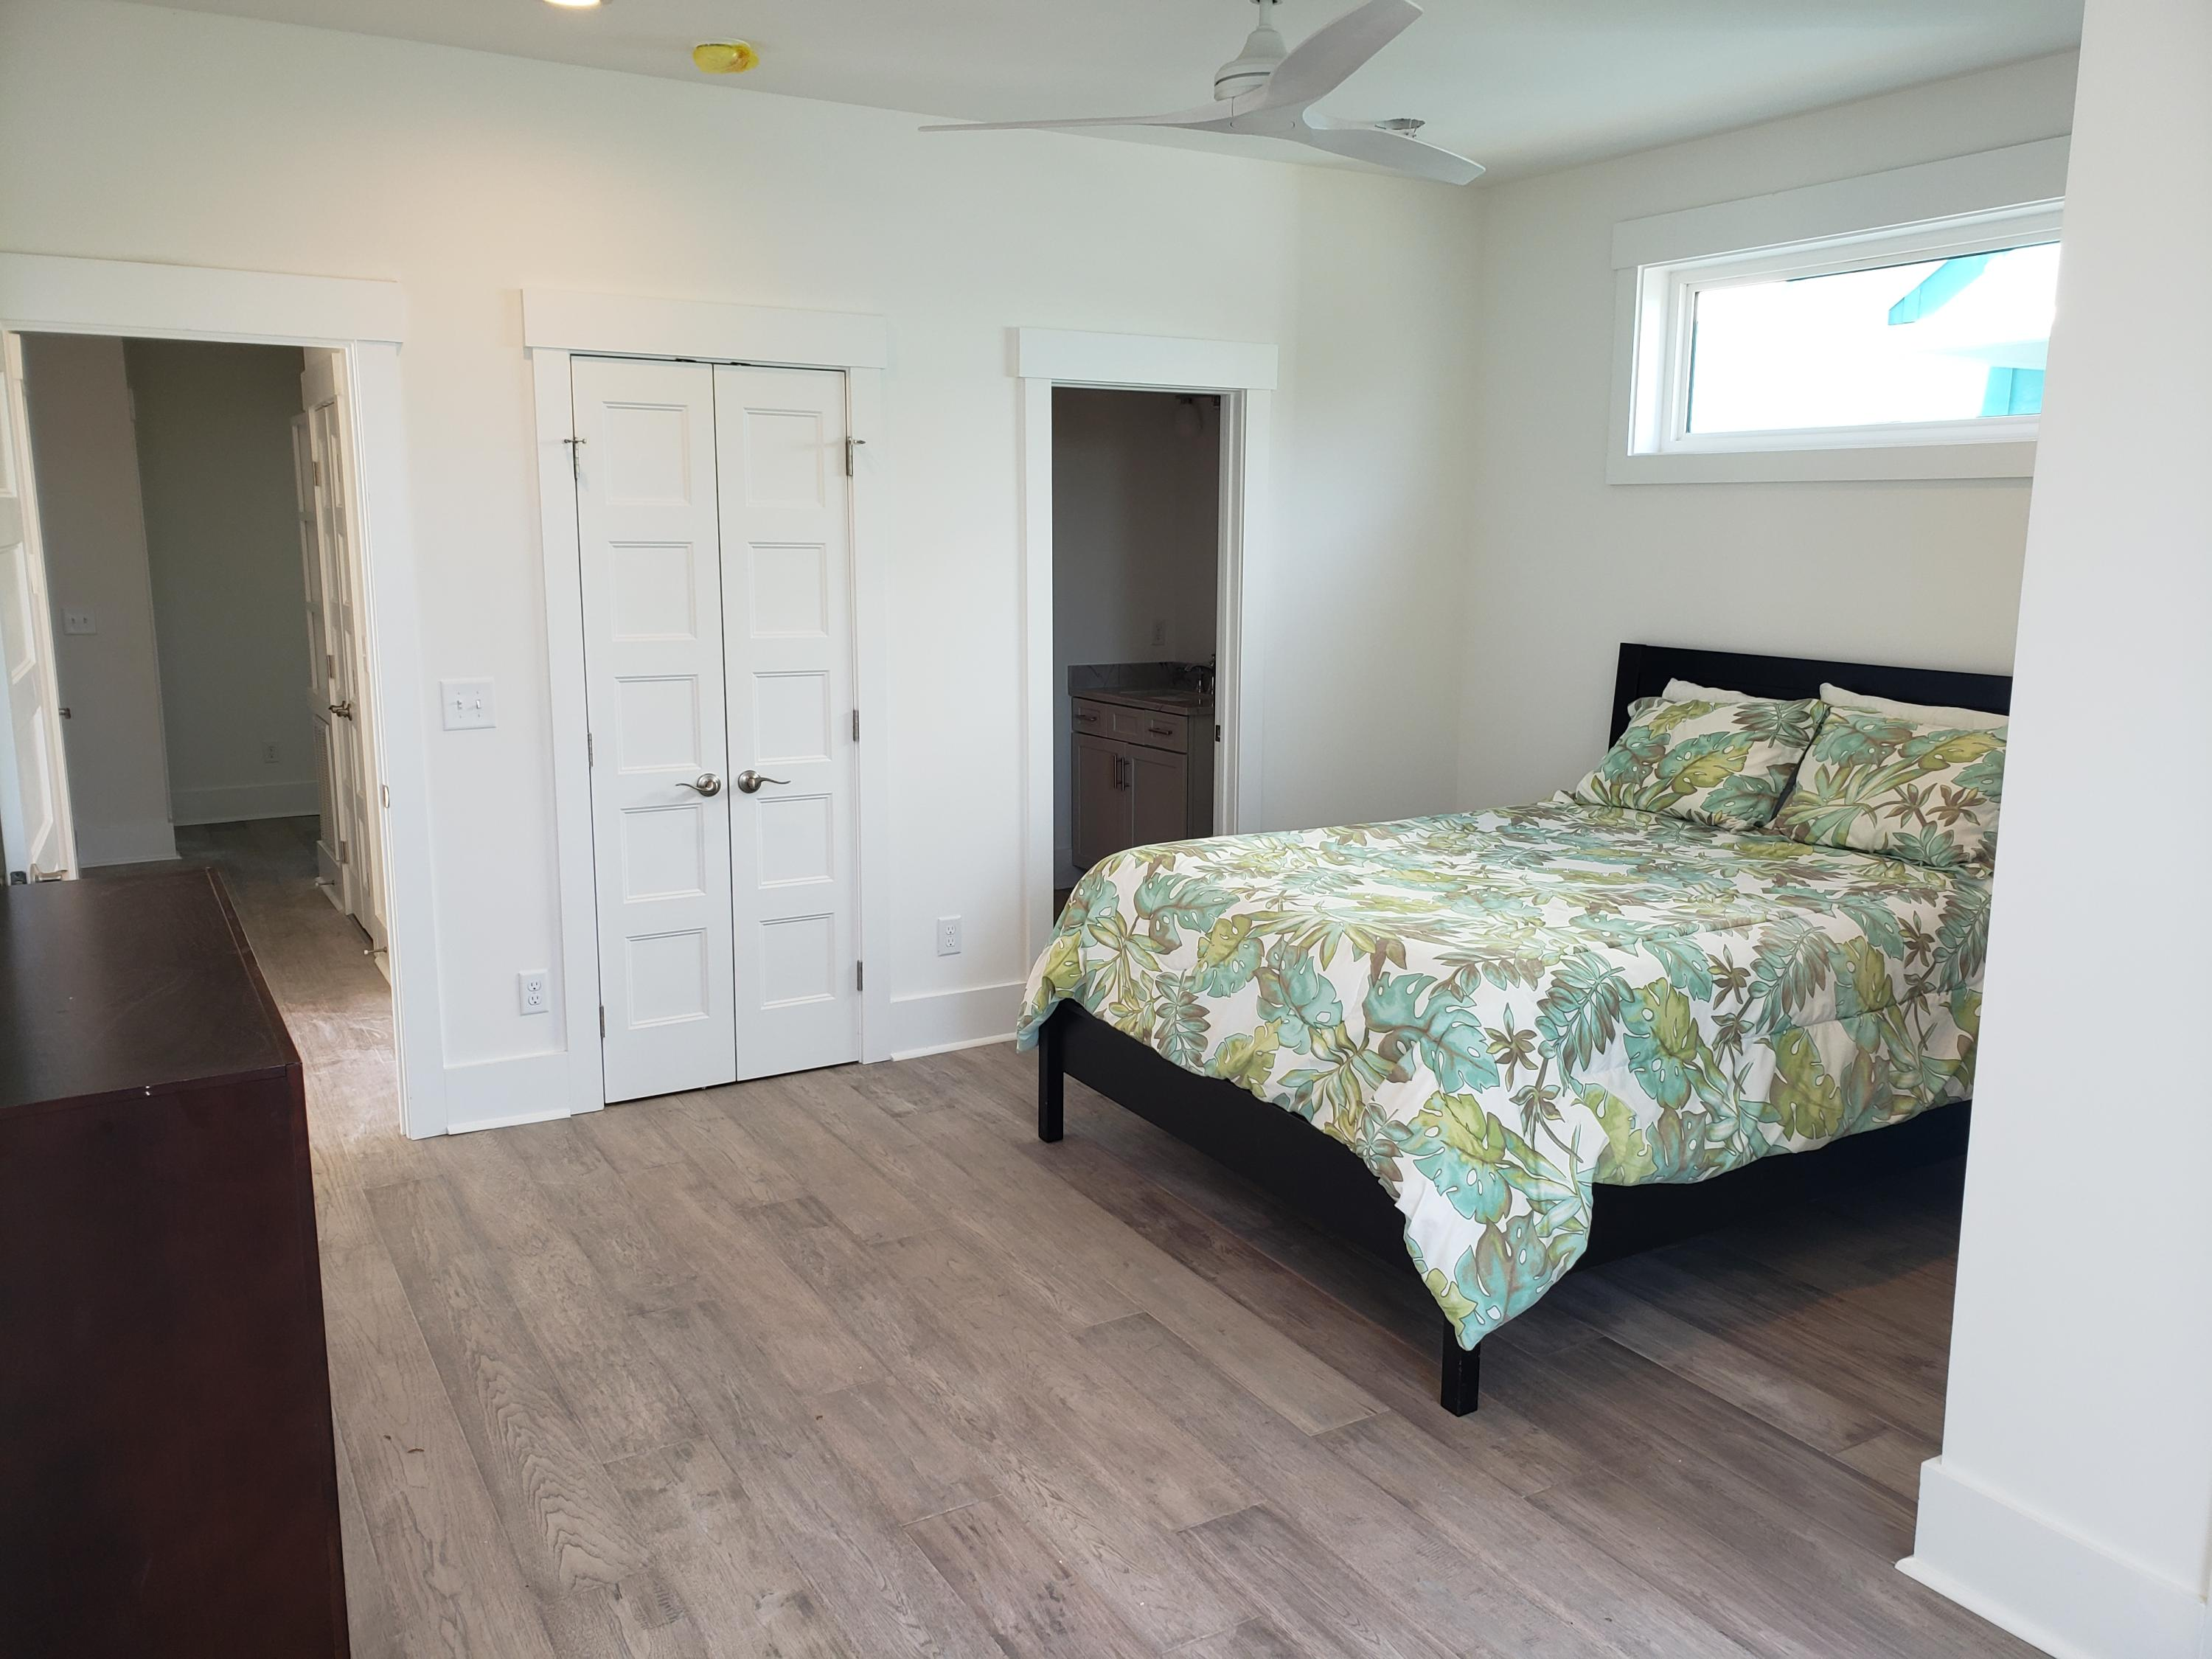 Mariners Cay Homes For Sale - 1004 Mariners Cay, Folly Beach, SC - 29